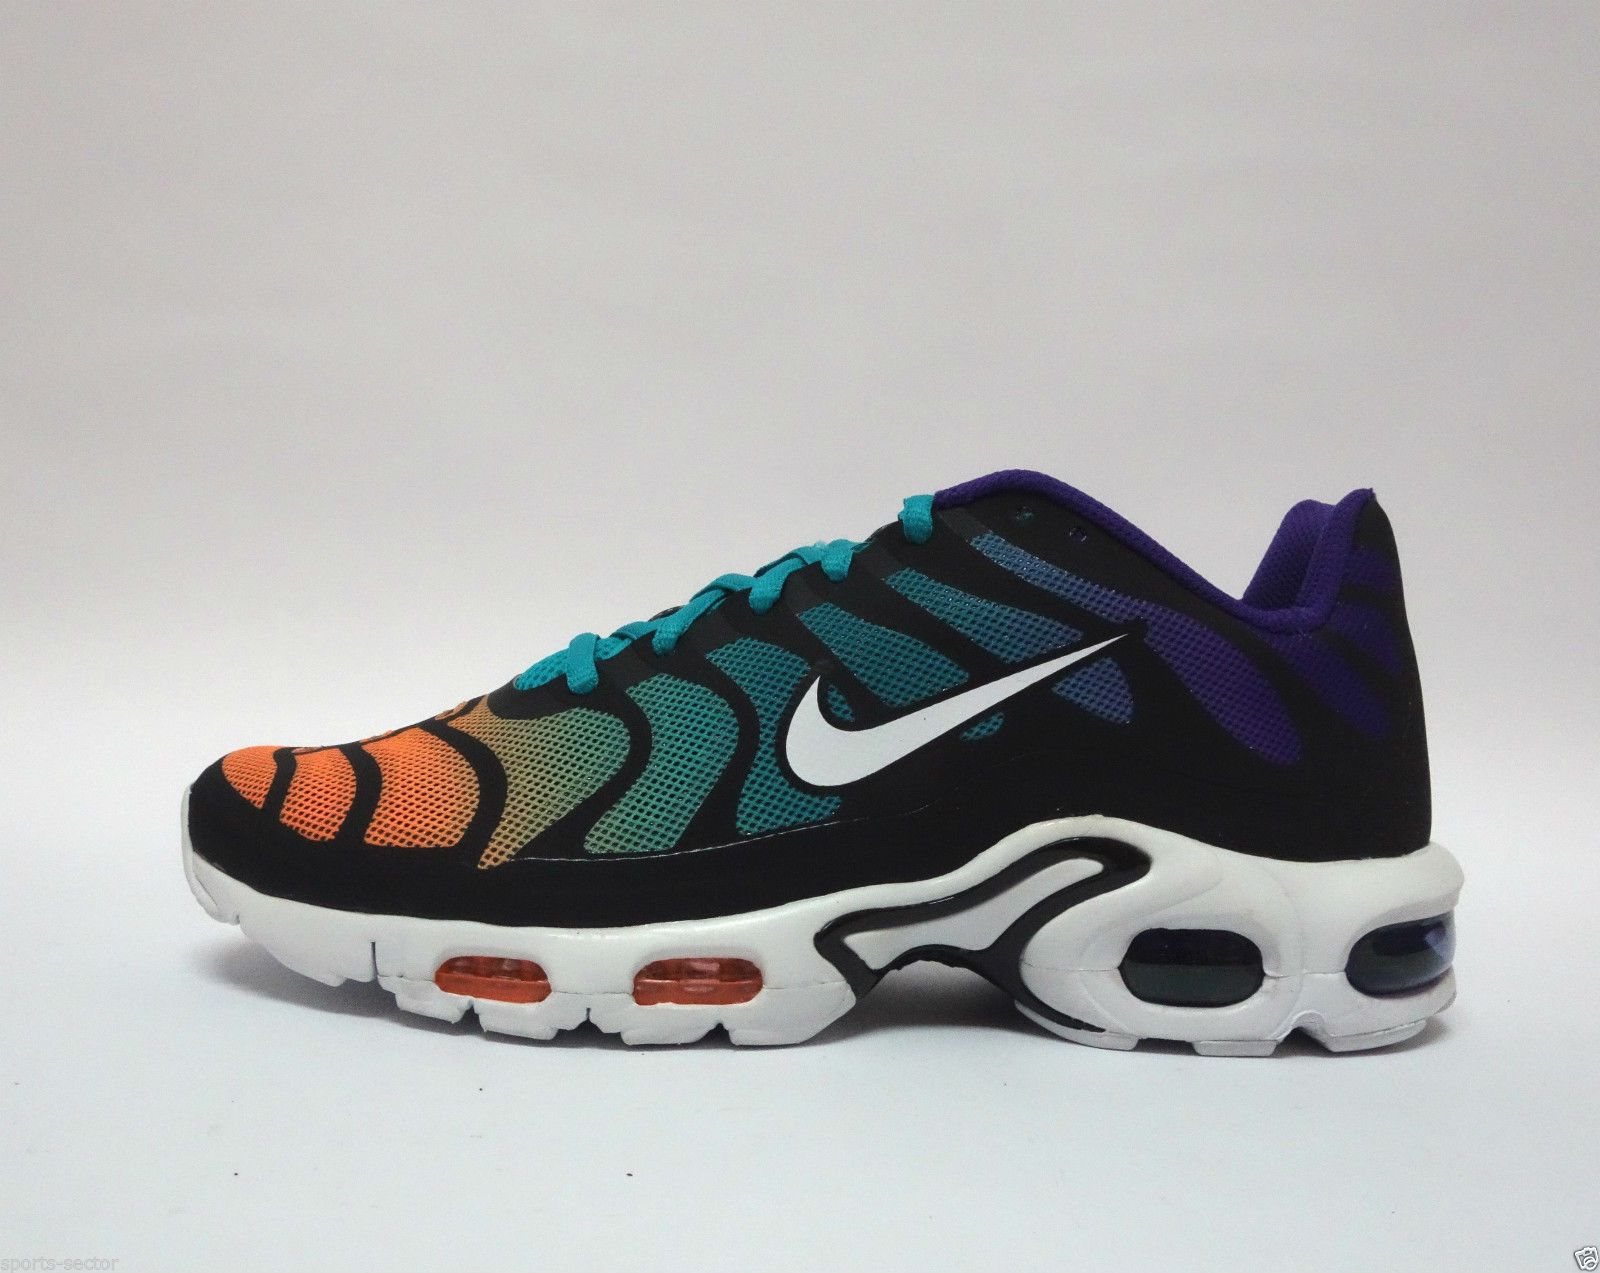 buy popular 54c3c f3a21 Nike Air Max Plus Hyperfuse TN1 Tuned Mens Trainers Shoes Turbo Green White    eBay